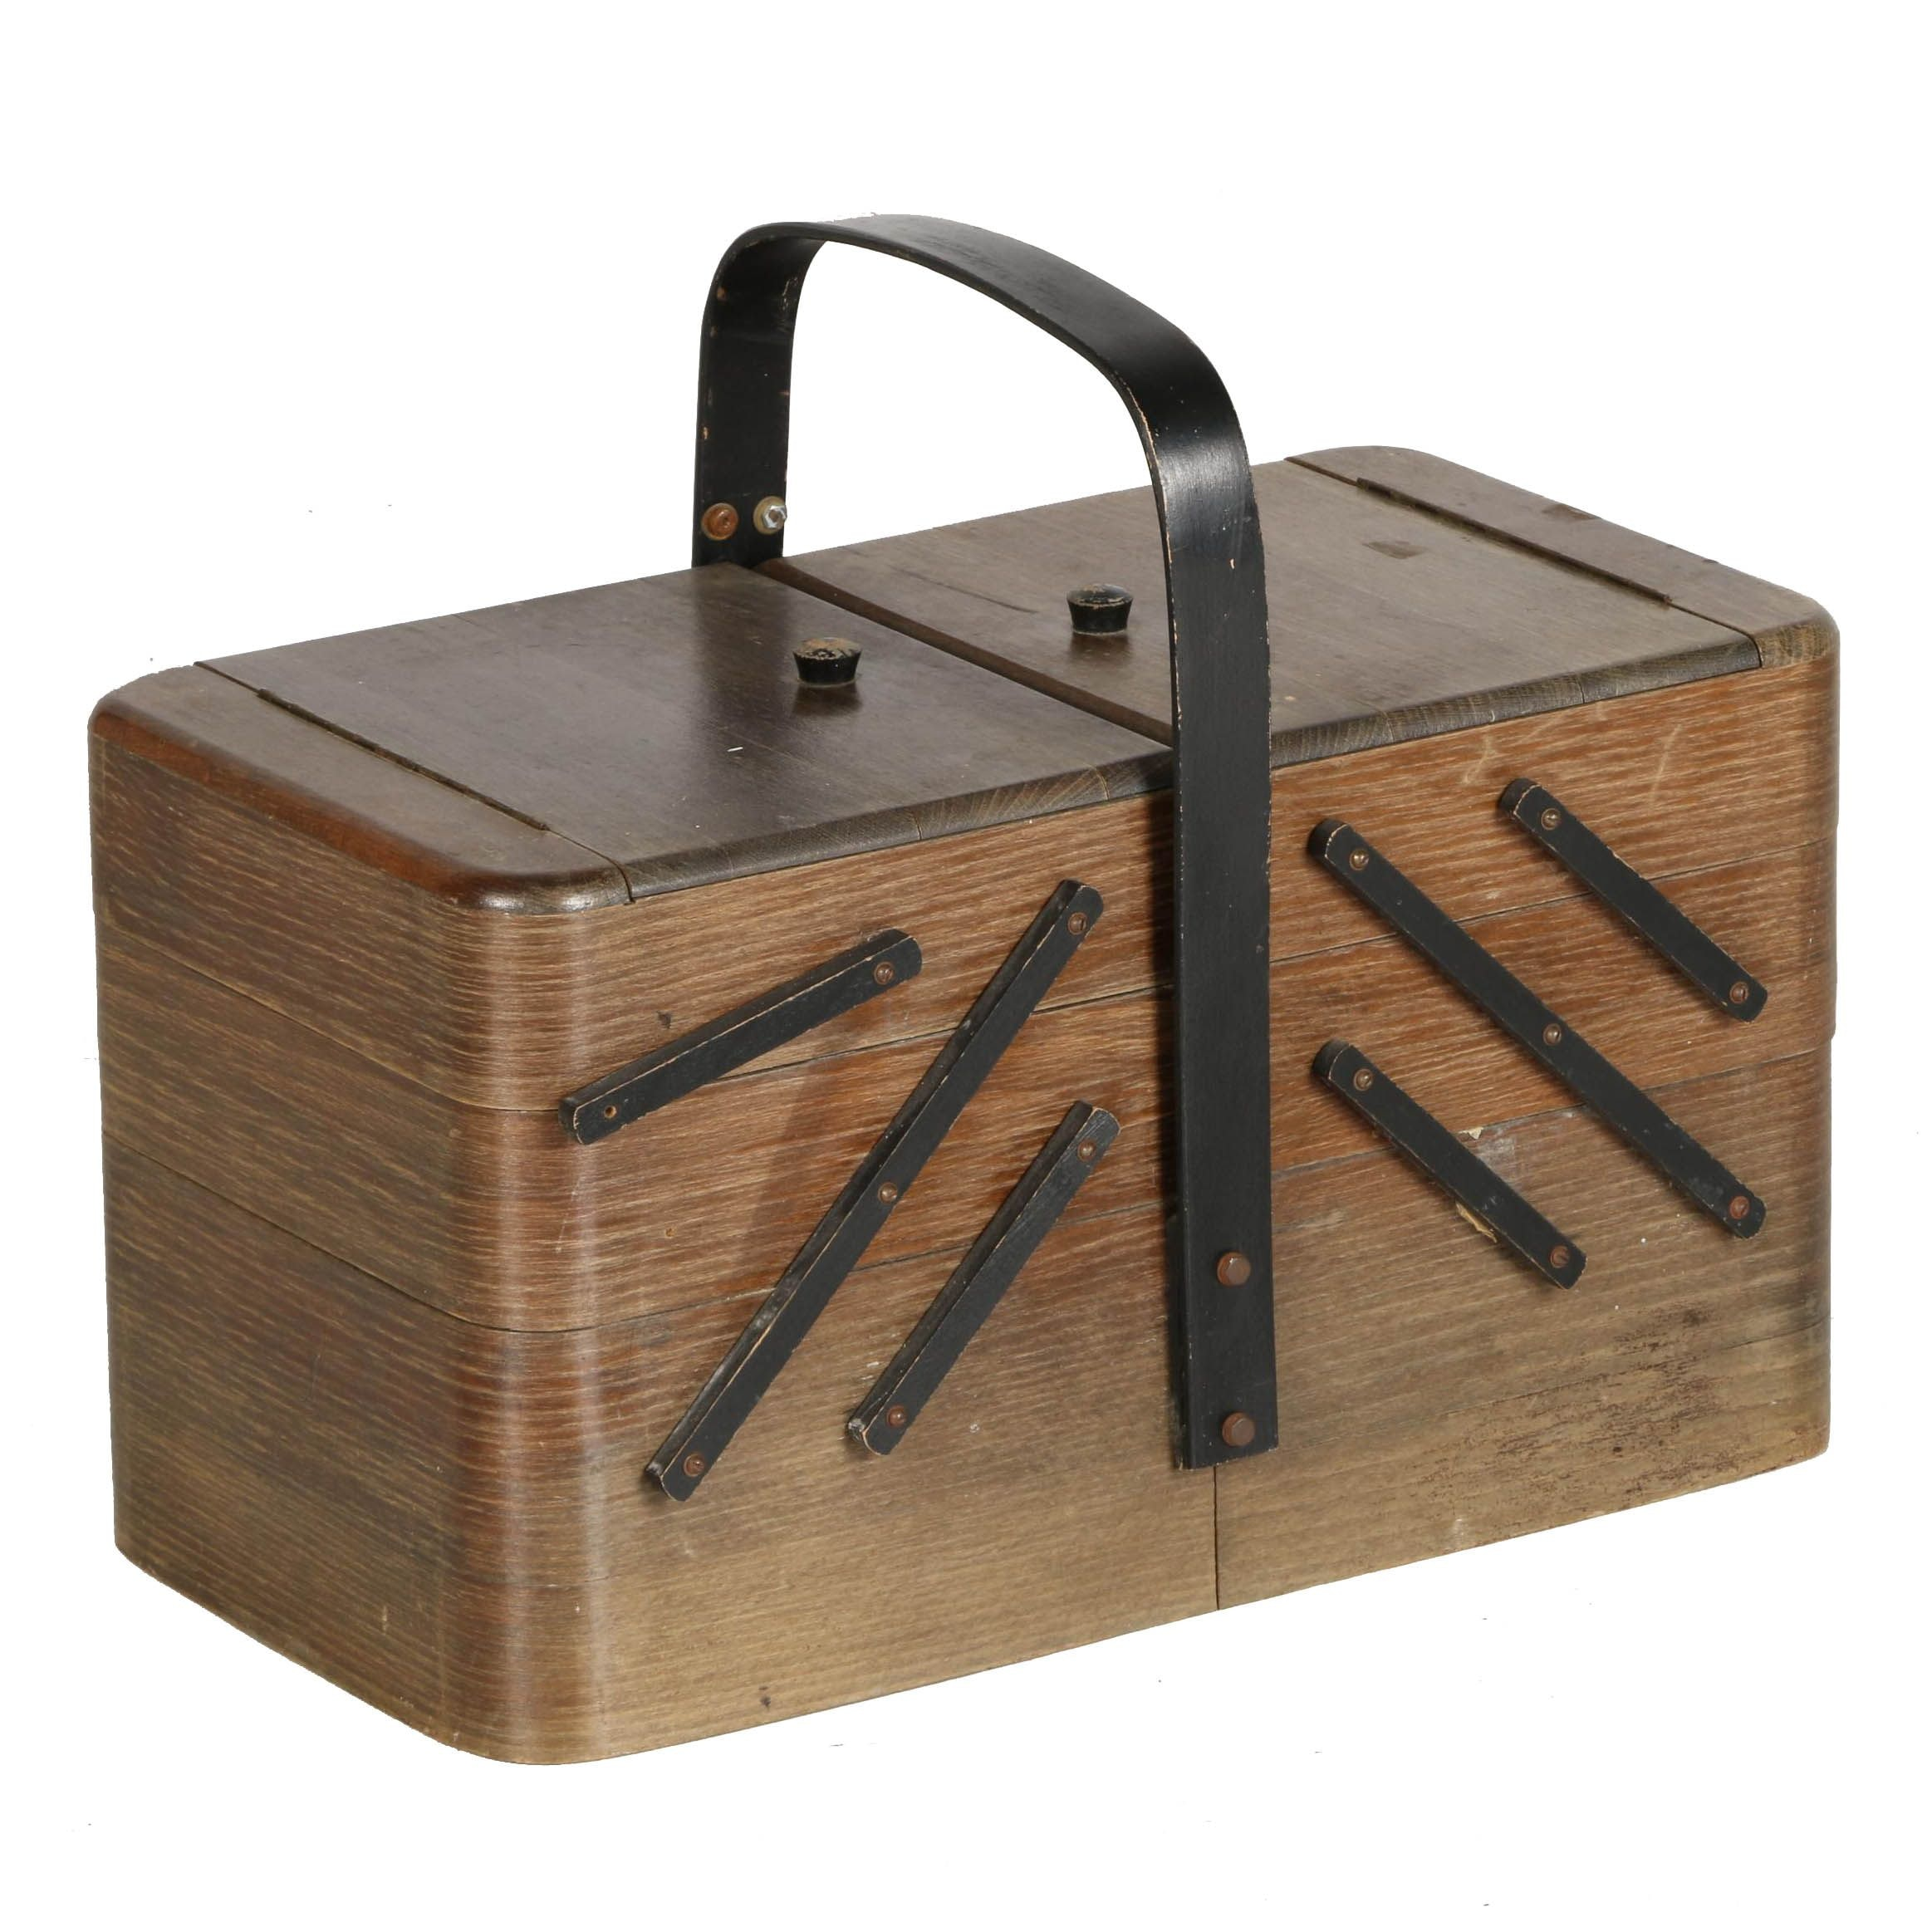 Vintage Wooden Sewing Basket With Drawers